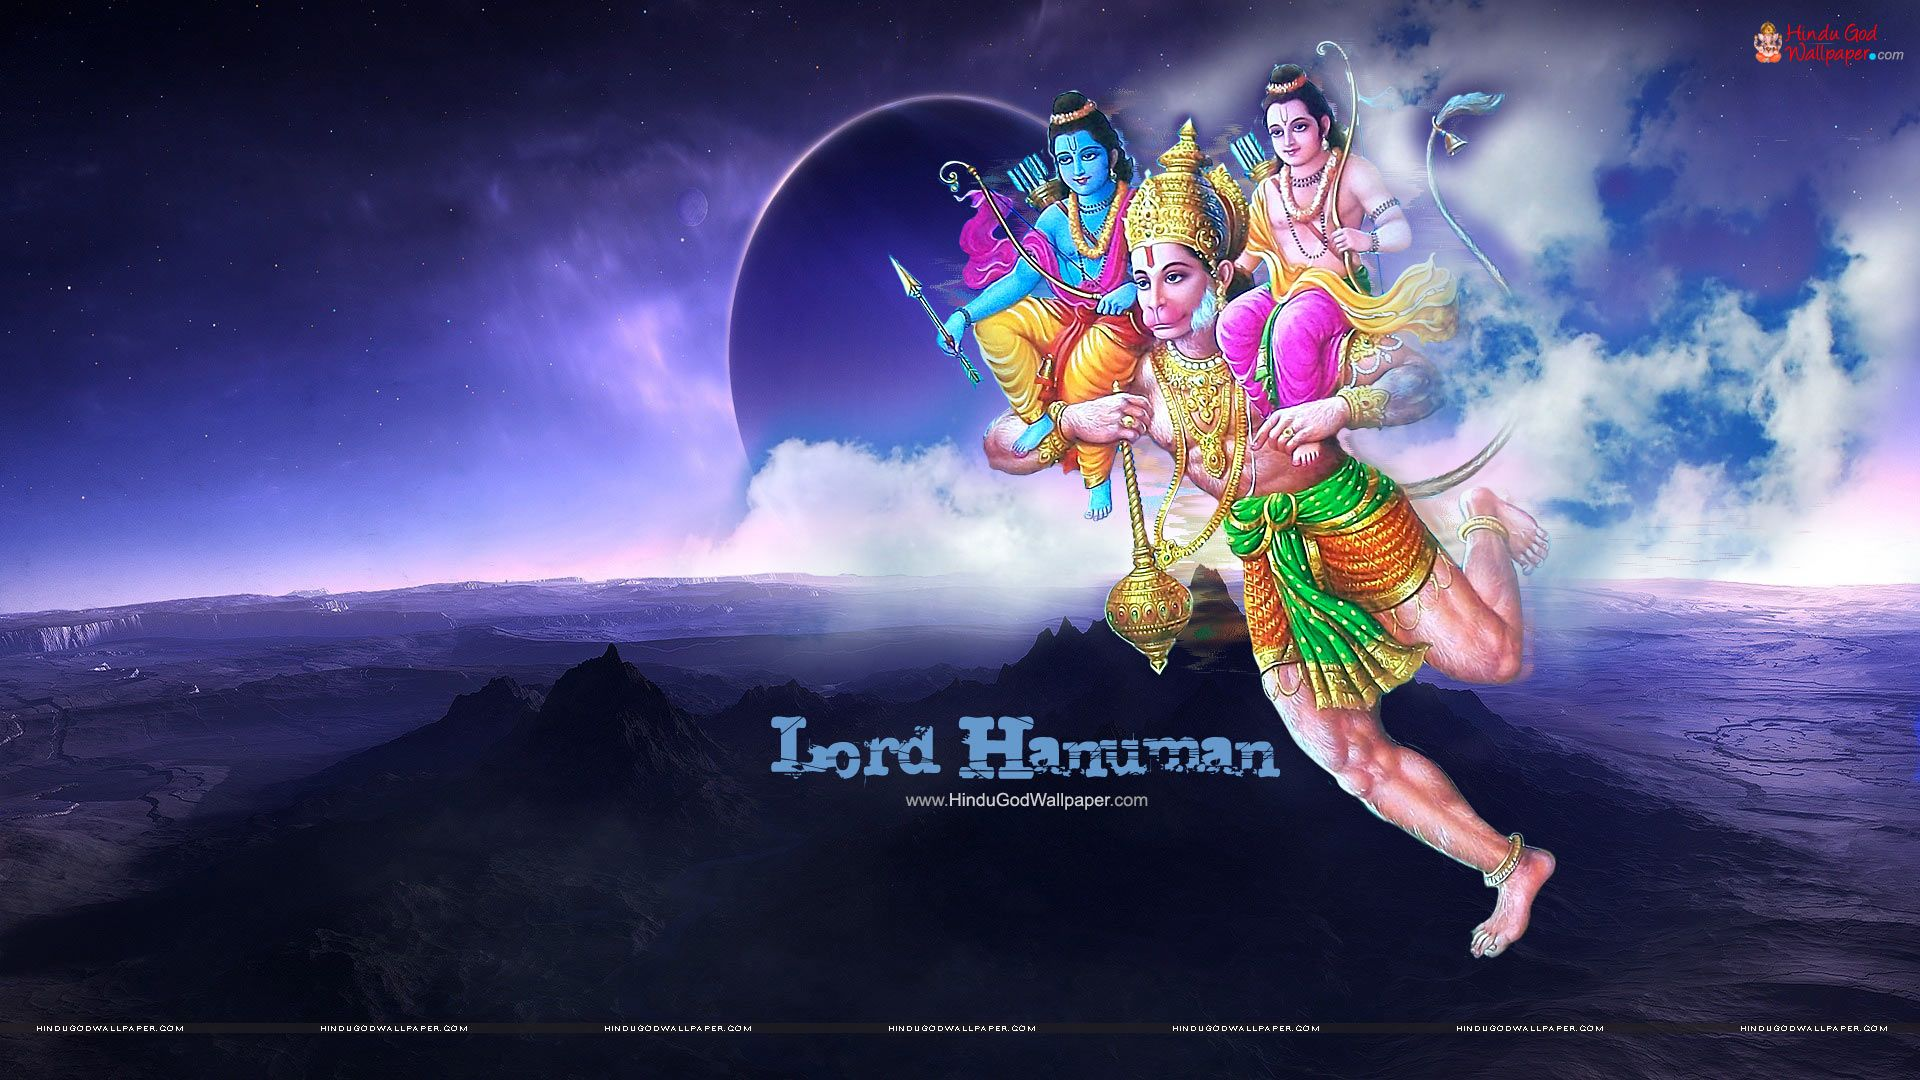 free lord hanuman hd wallpapers at and full size high resolution with hanuman ji desktop wallpaper pictures photos and images